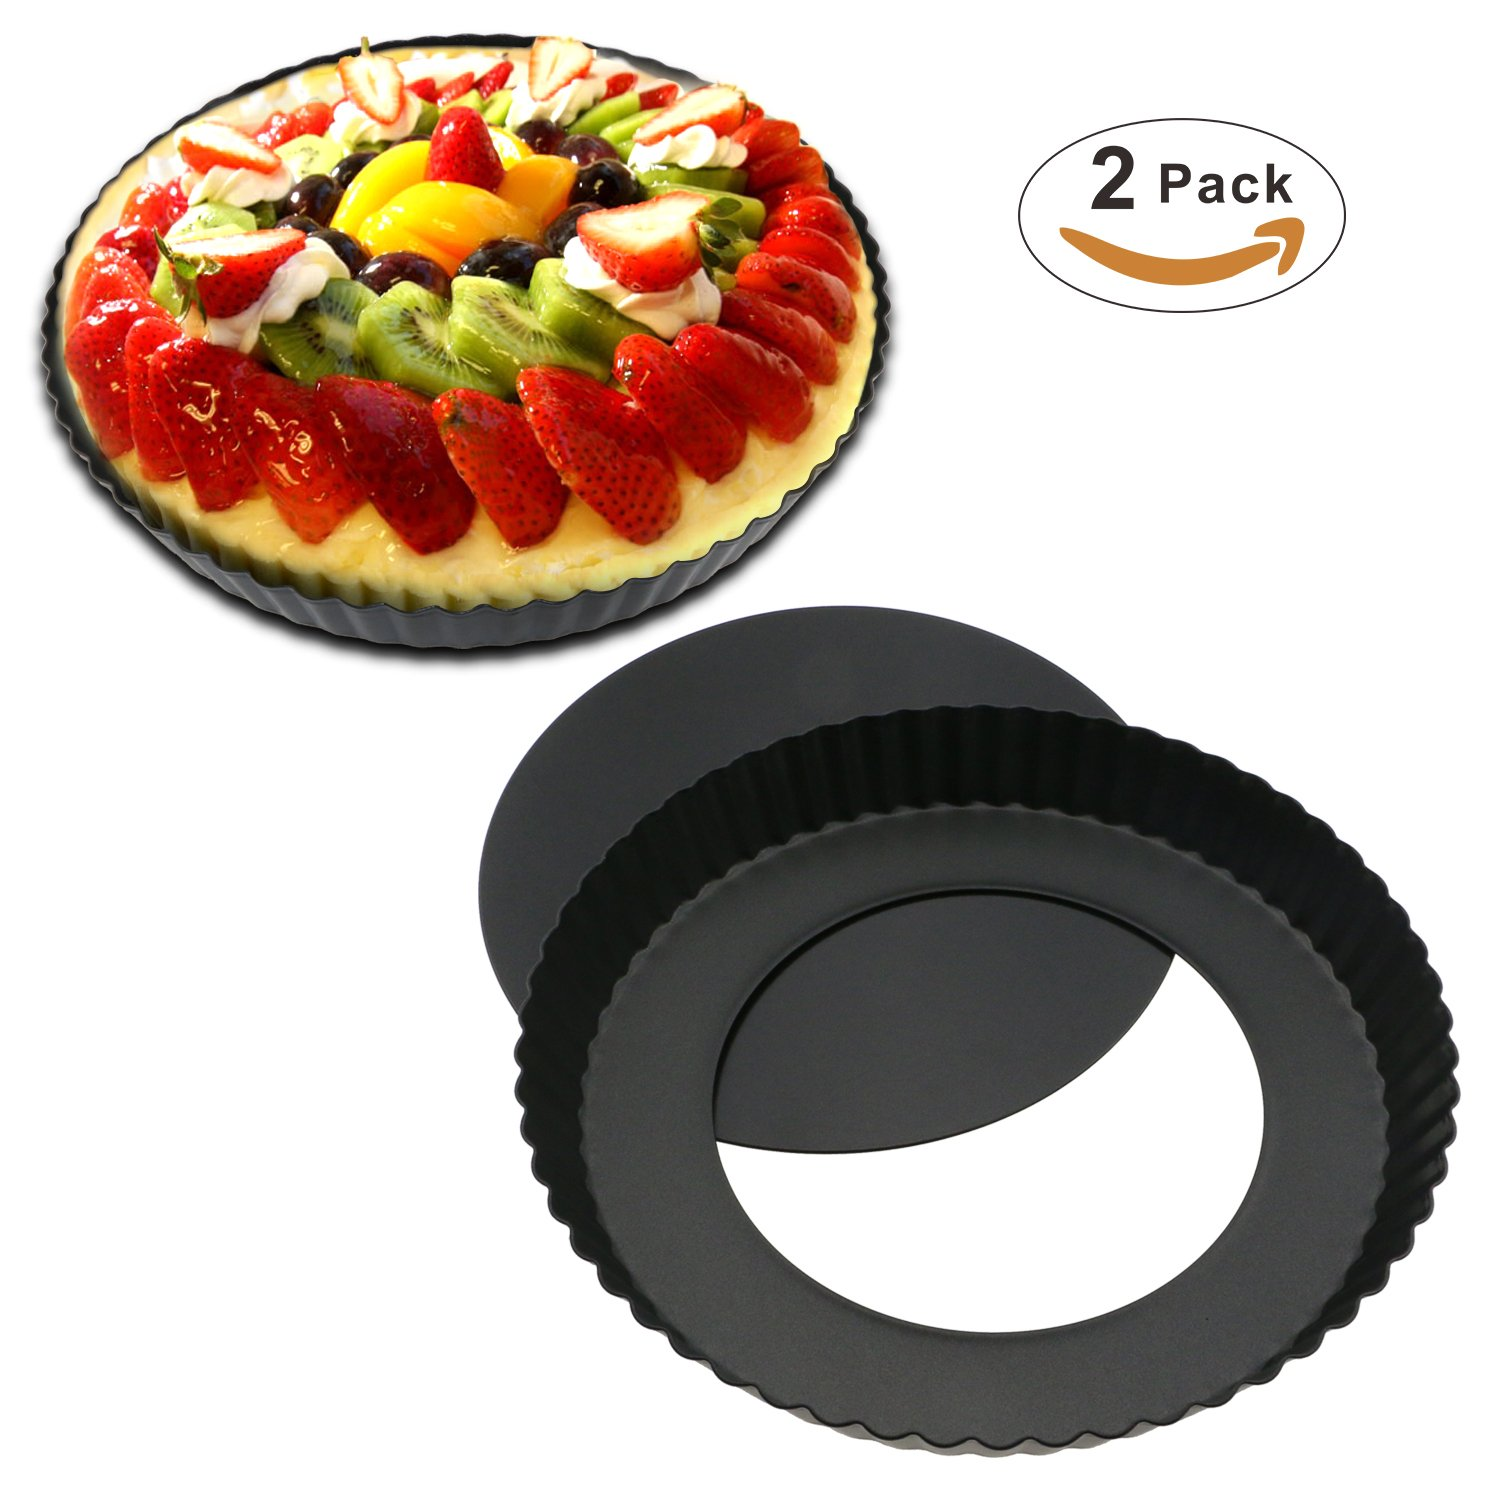 Are deep tart pan with removable bottom